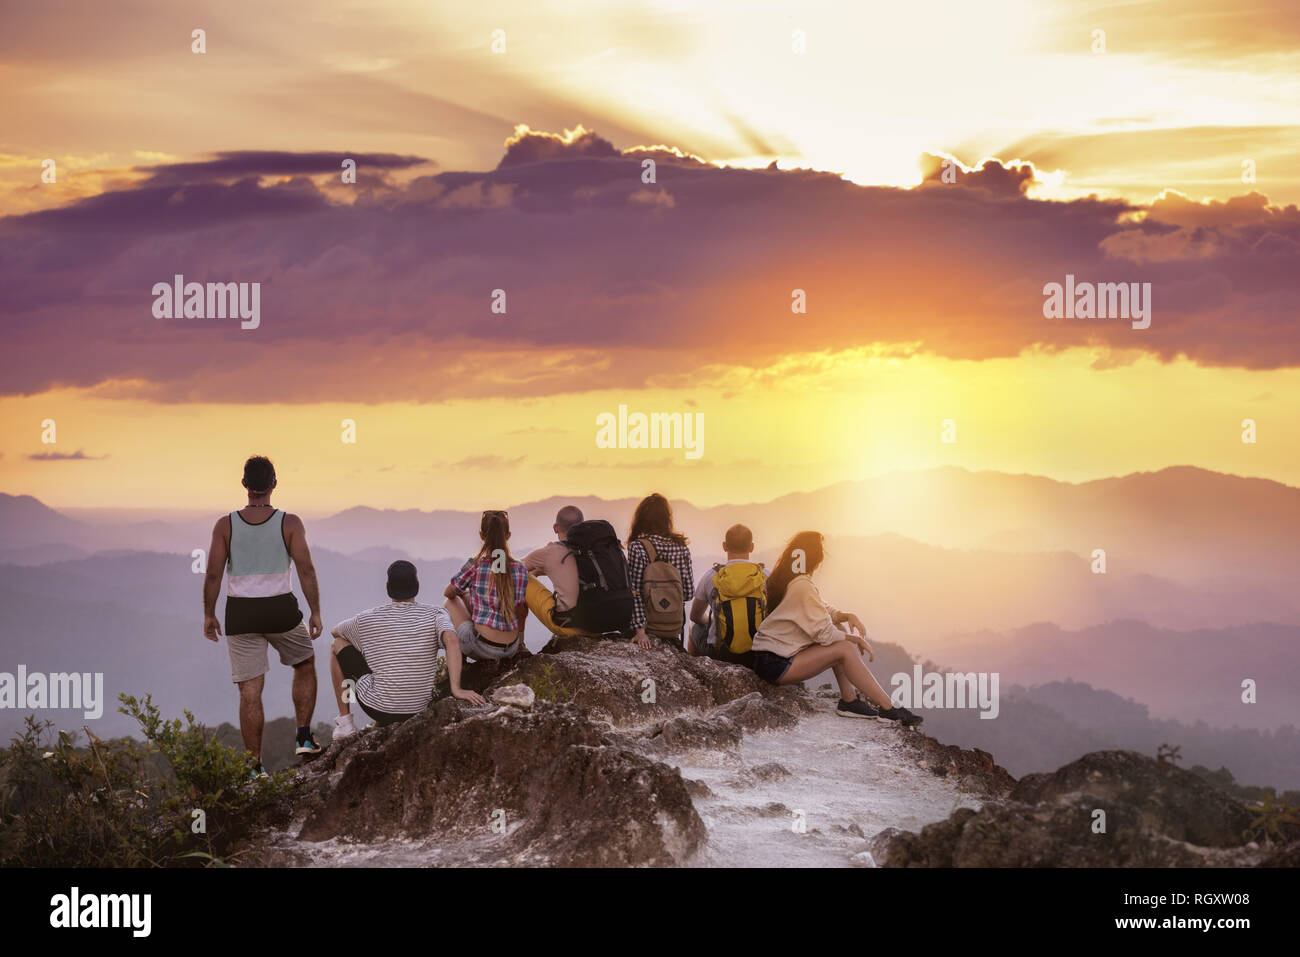 Big group of friends stands on mountain top and looks at beautiful sunset. Travel with friends concept Stock Photo